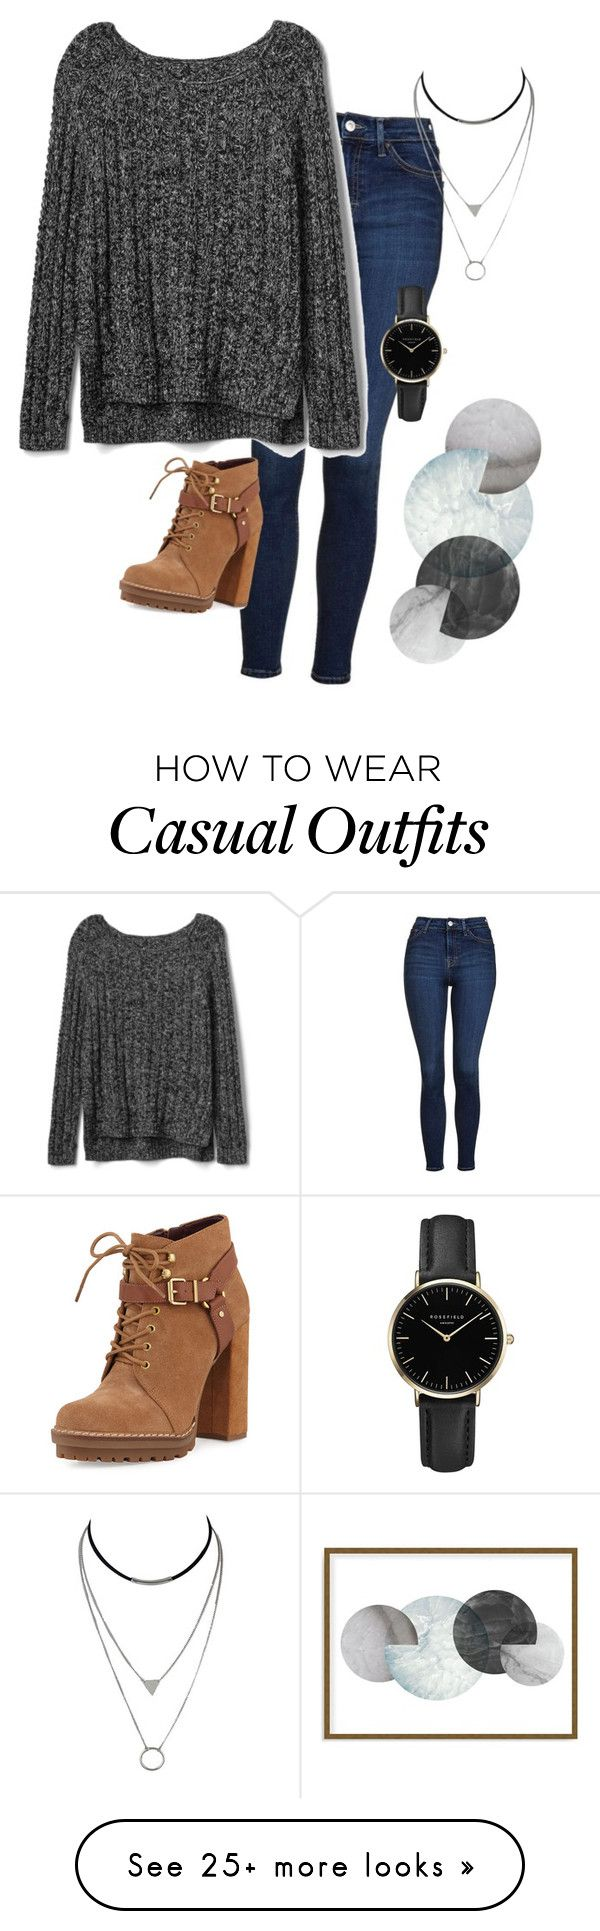 """casual monday"" by evergreensage on Polyvore featuring Topshop, Gap, BCBGeneration, ROSEFIELD and Art Addiction"